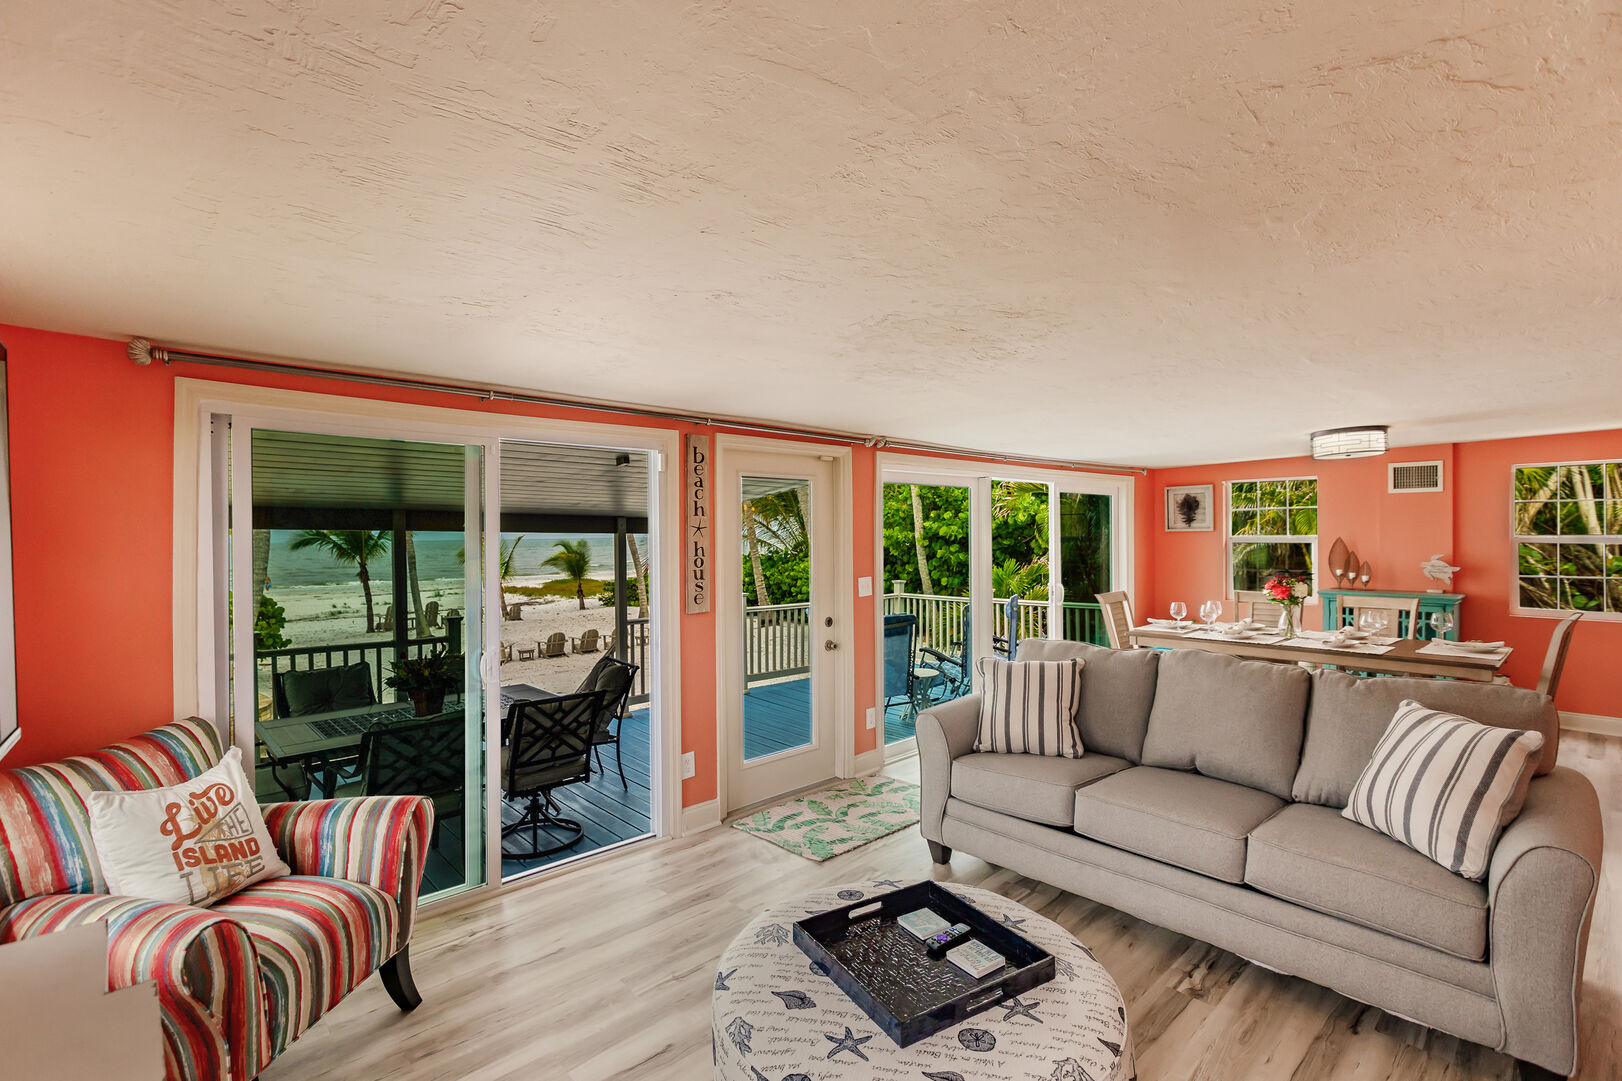 Living Room and Back Deck View of Beach Private Beach House Rental in Florida